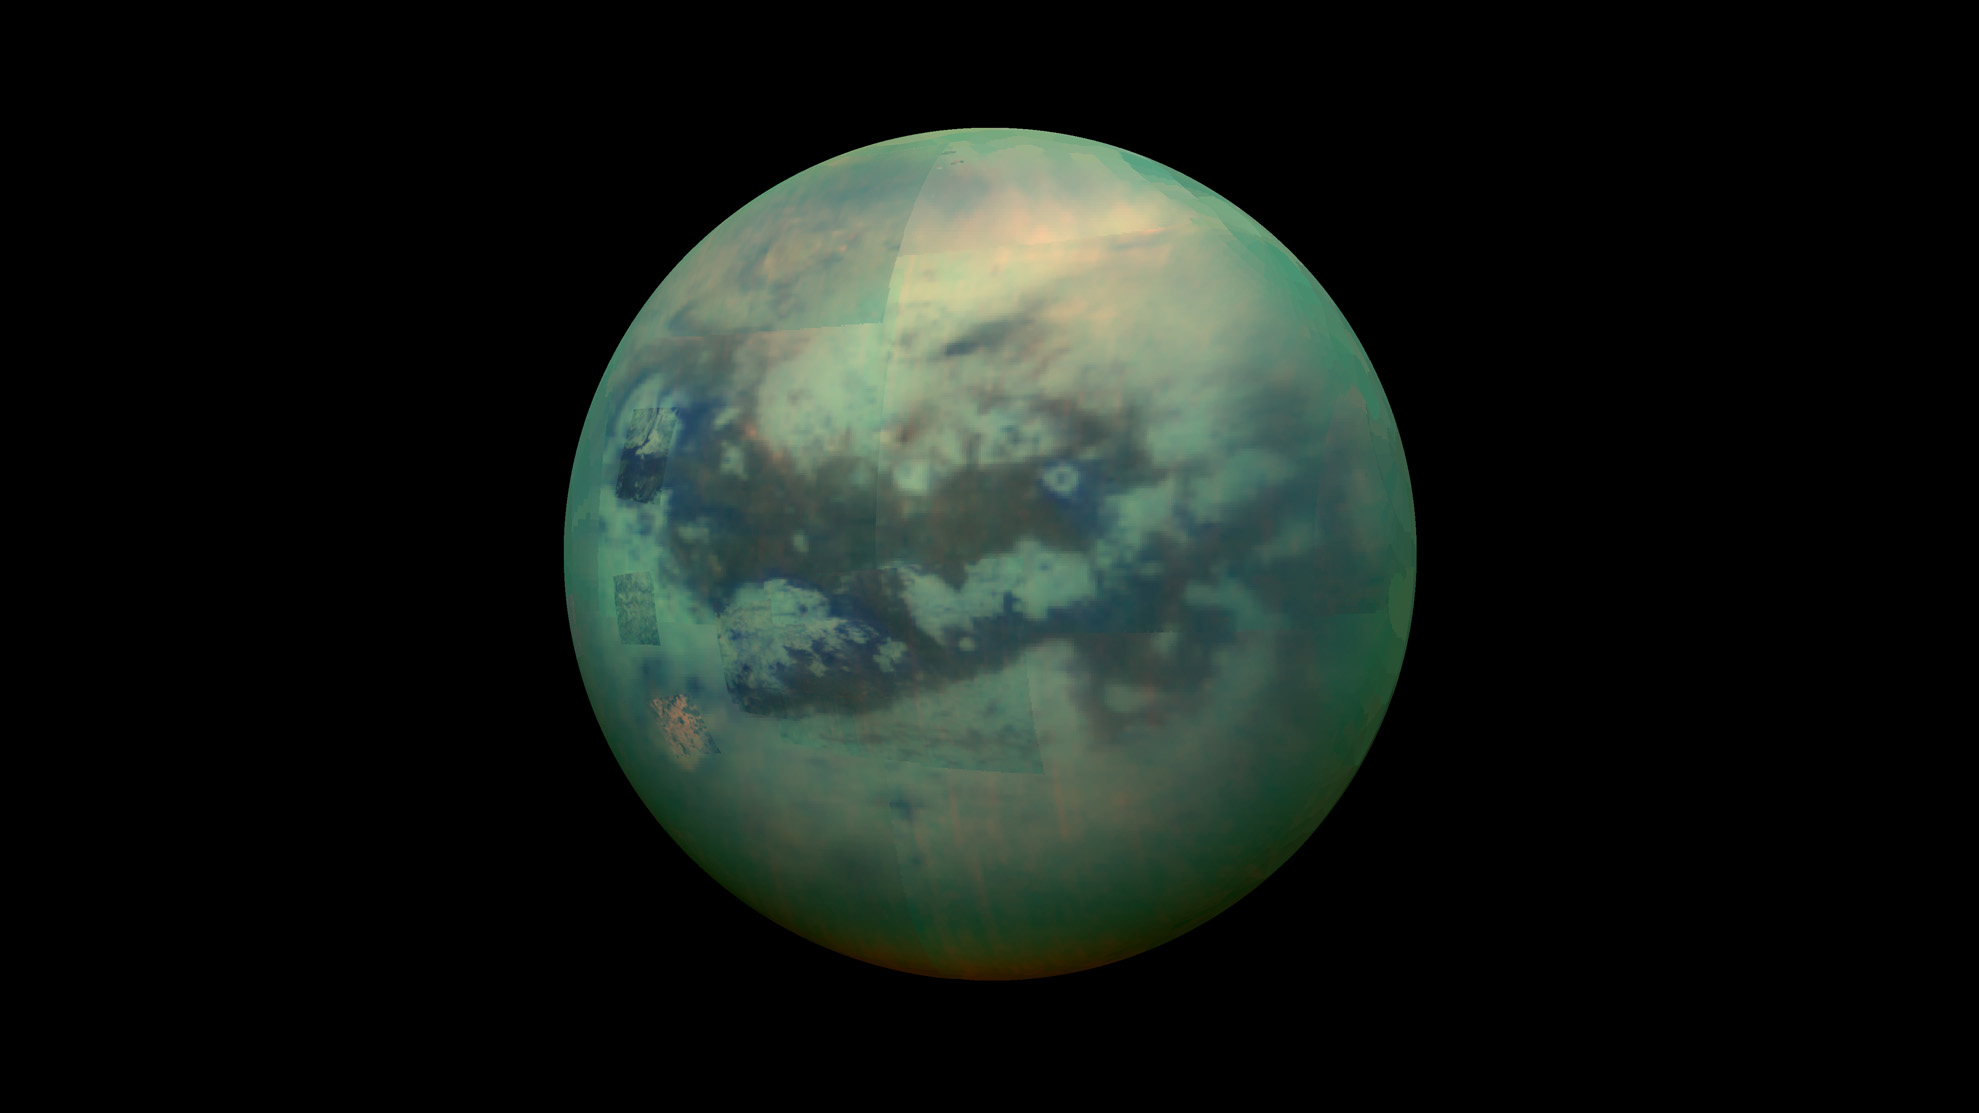 A false-color view of Titan, a moon of Saturn surrounded by a thick orange haze. Titan is believed to contain an ocean with an icy crust on top, which will be simulated in future research. Image credit: NASA/JPL-Caltech/Space Science Institute